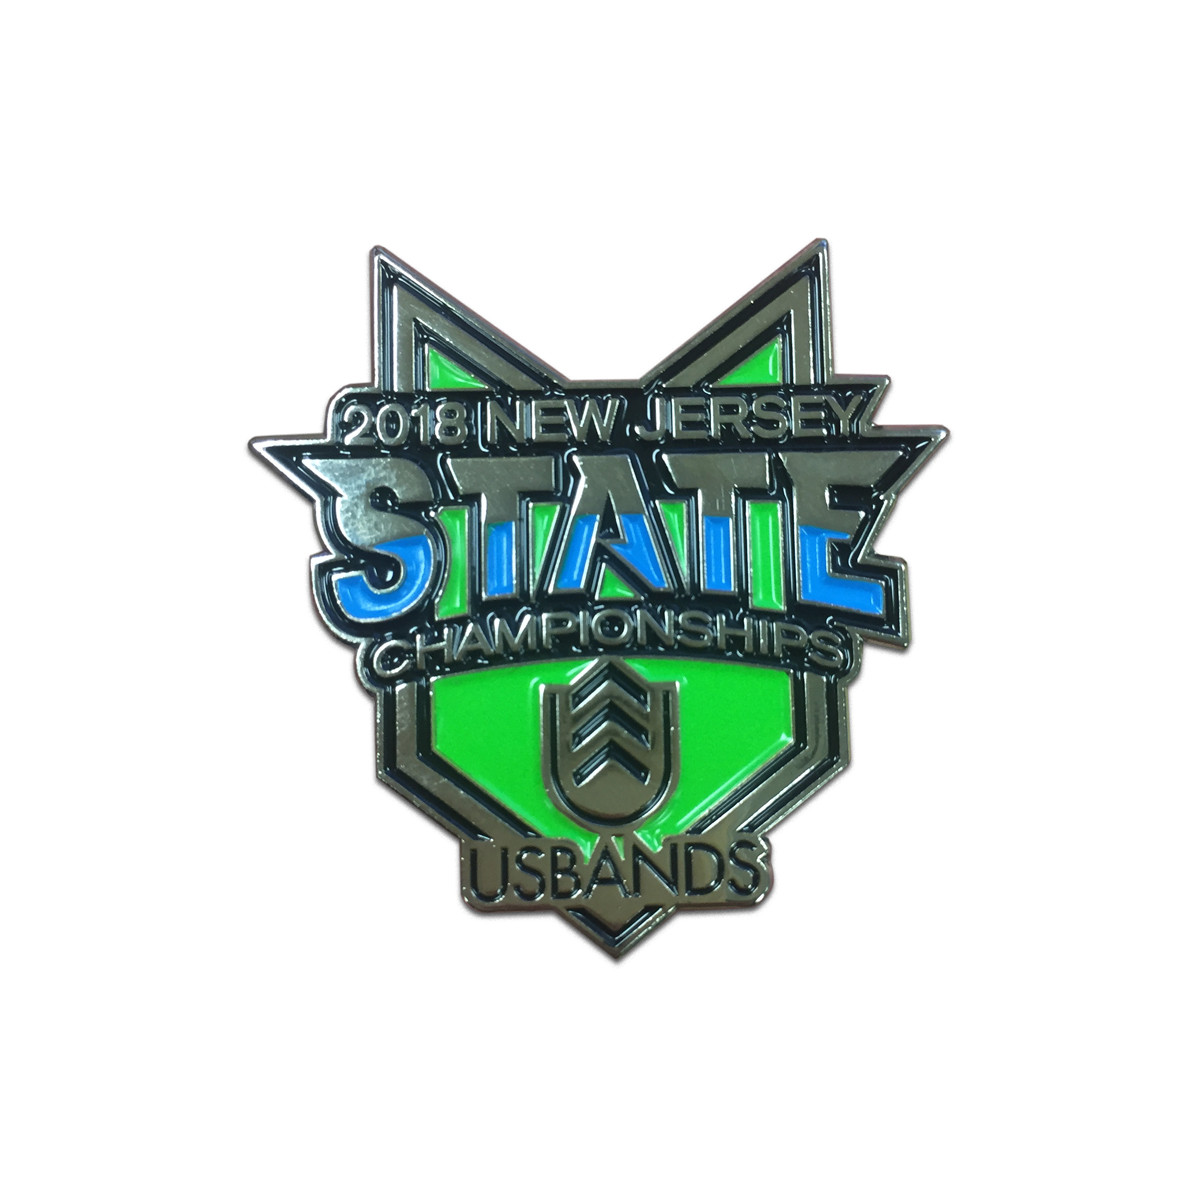 2018 USBands New Jersey State  Championship Event Pin